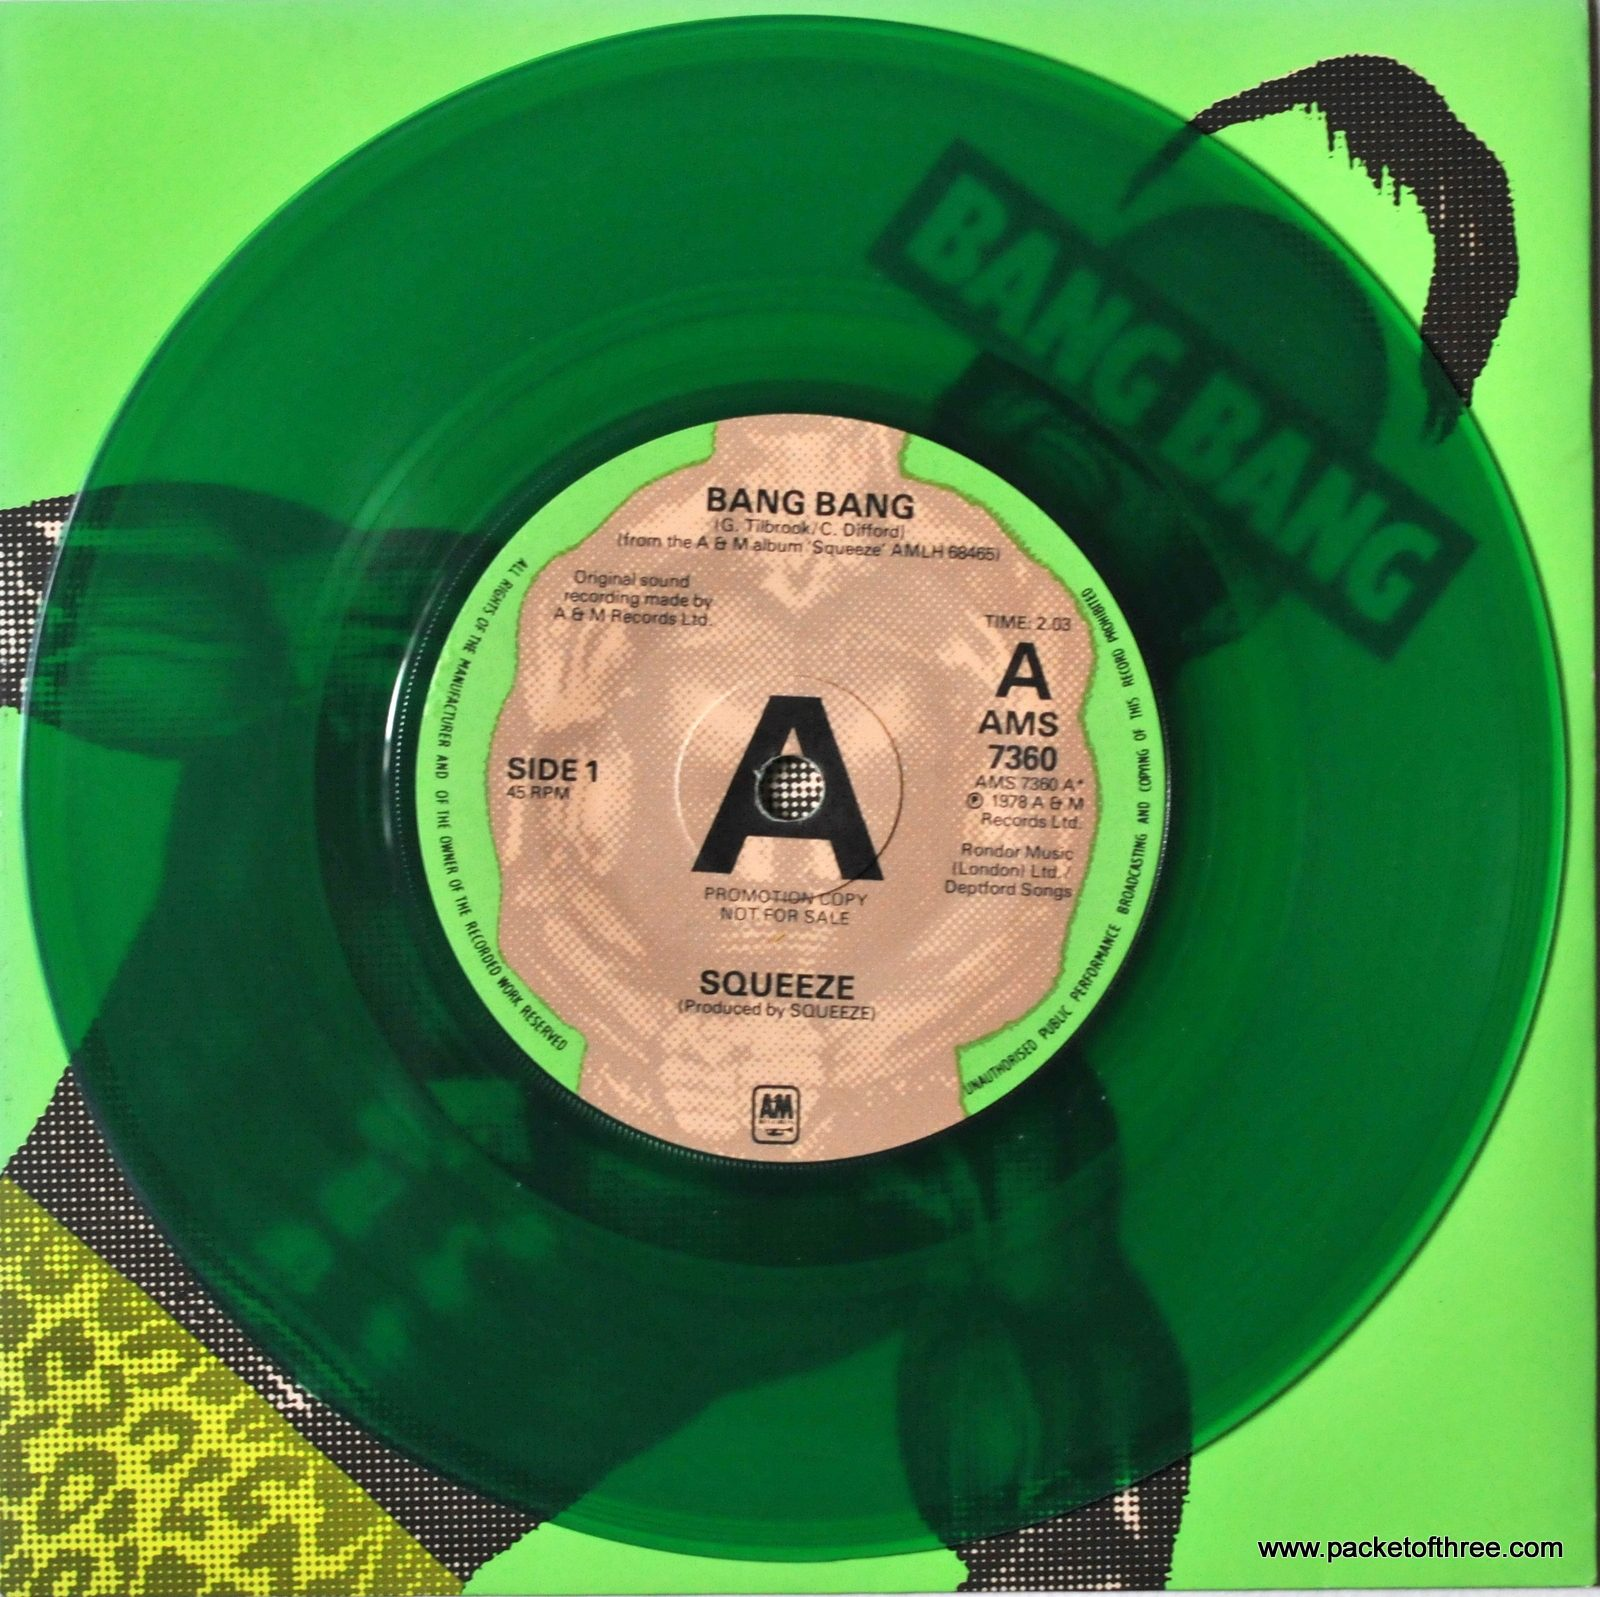 "Bang Bang - UK - 7"" - picture sleeve - green vinyl promotional copy"